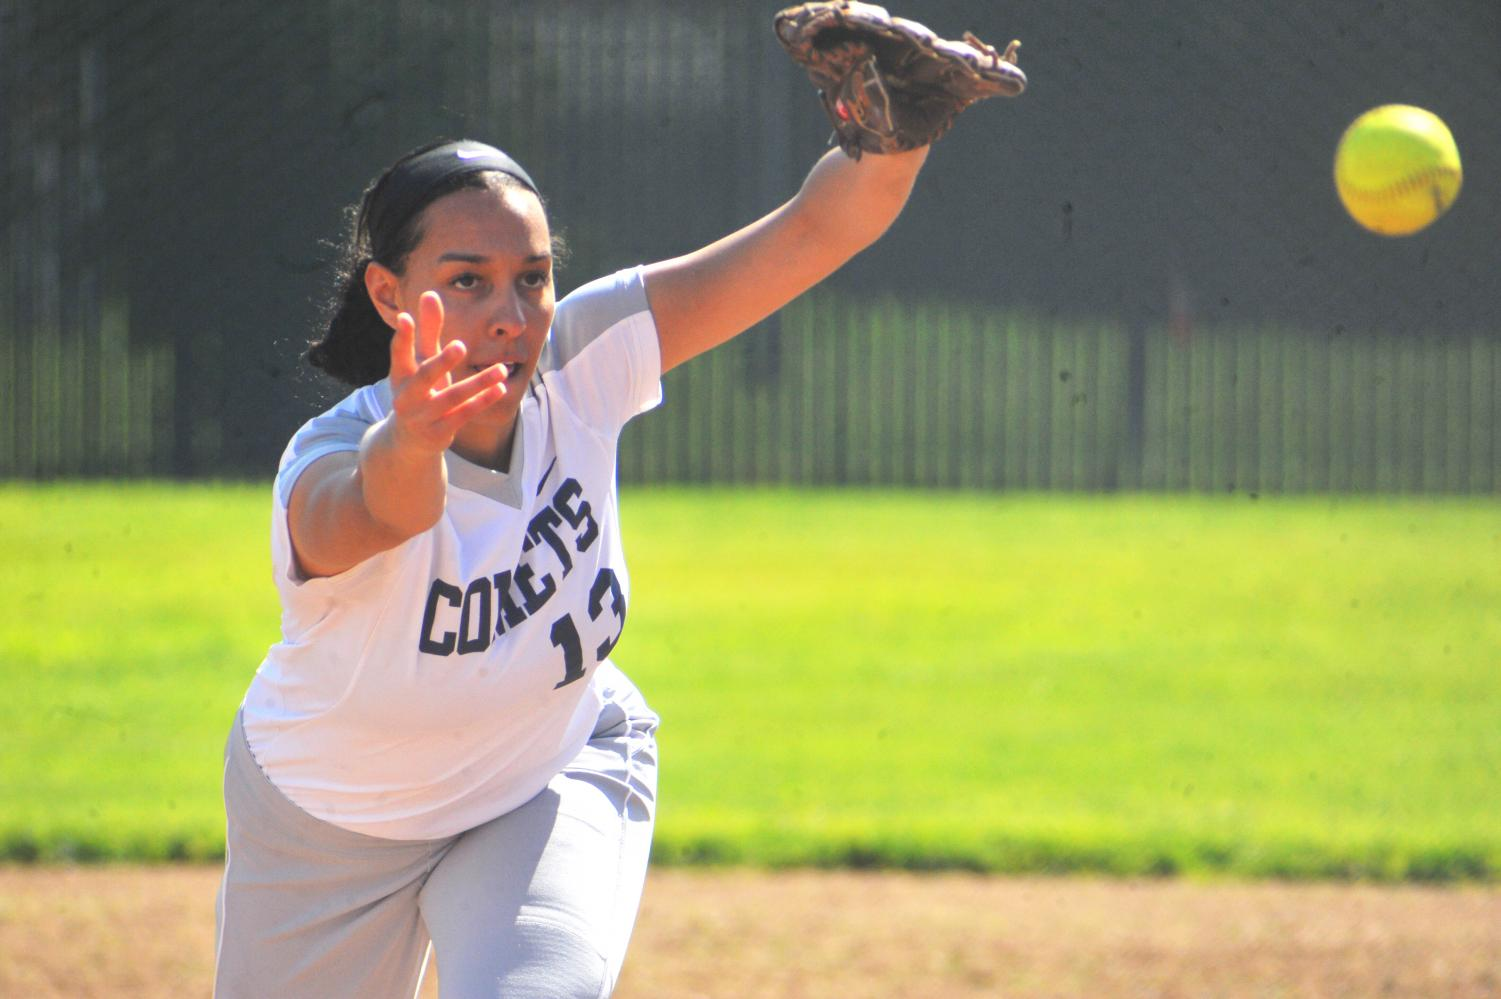 Comet pitcher Larissa Carvalho launches a pitch during the top of the fourth inning in Thursday's 15-2 loss against Yuba College at the Softball Field.